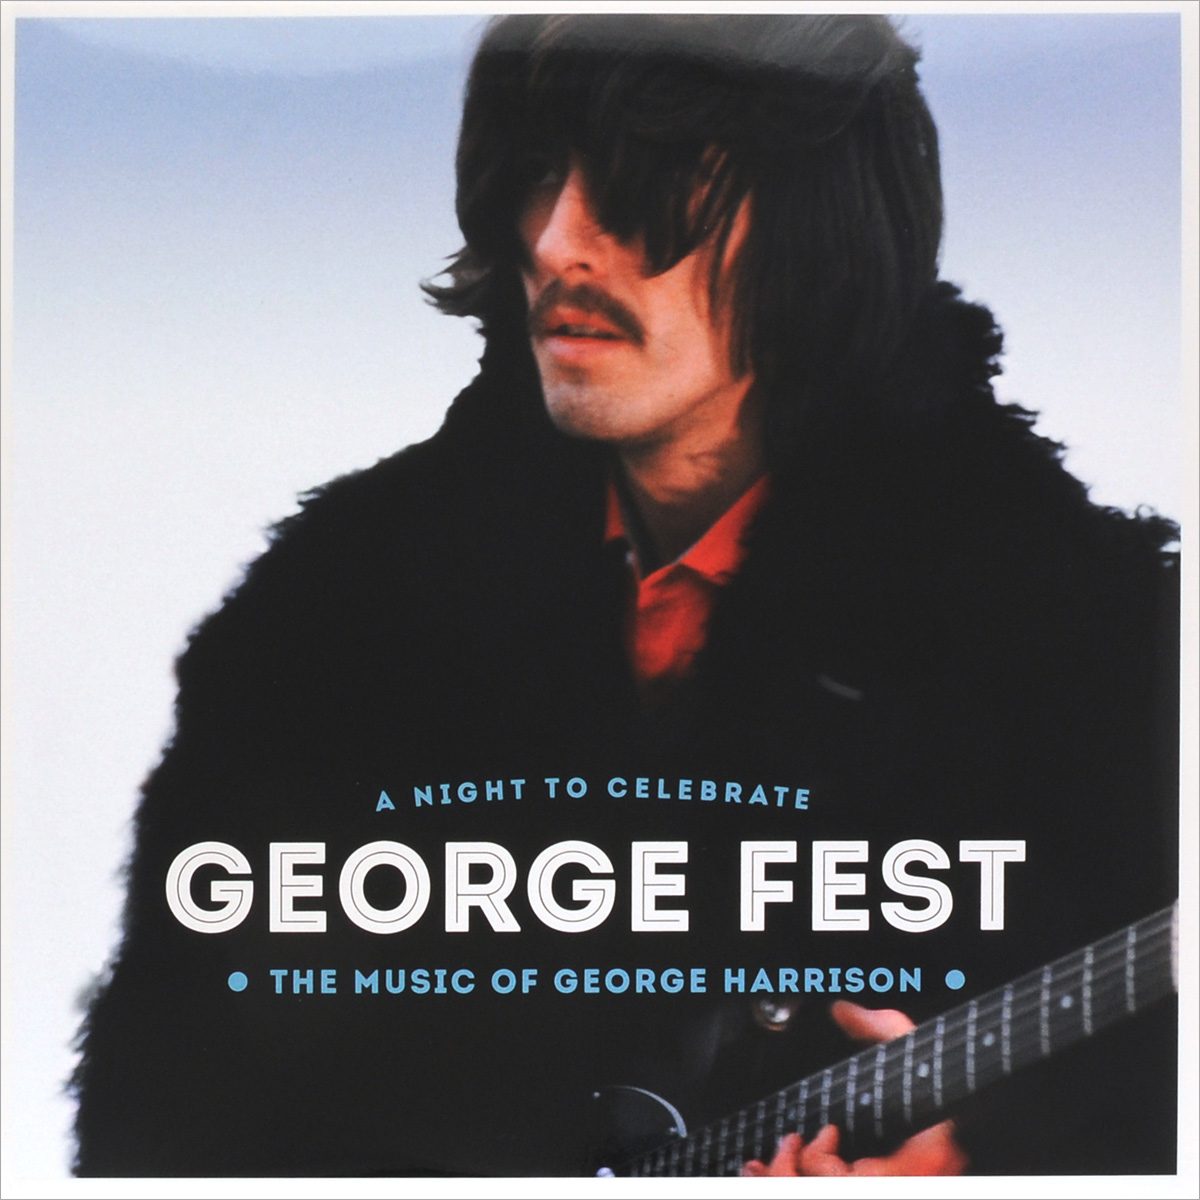 Conan O'Brien George Fest. A Night To Celebrate The Music Of George Harrison (3 LP) цена